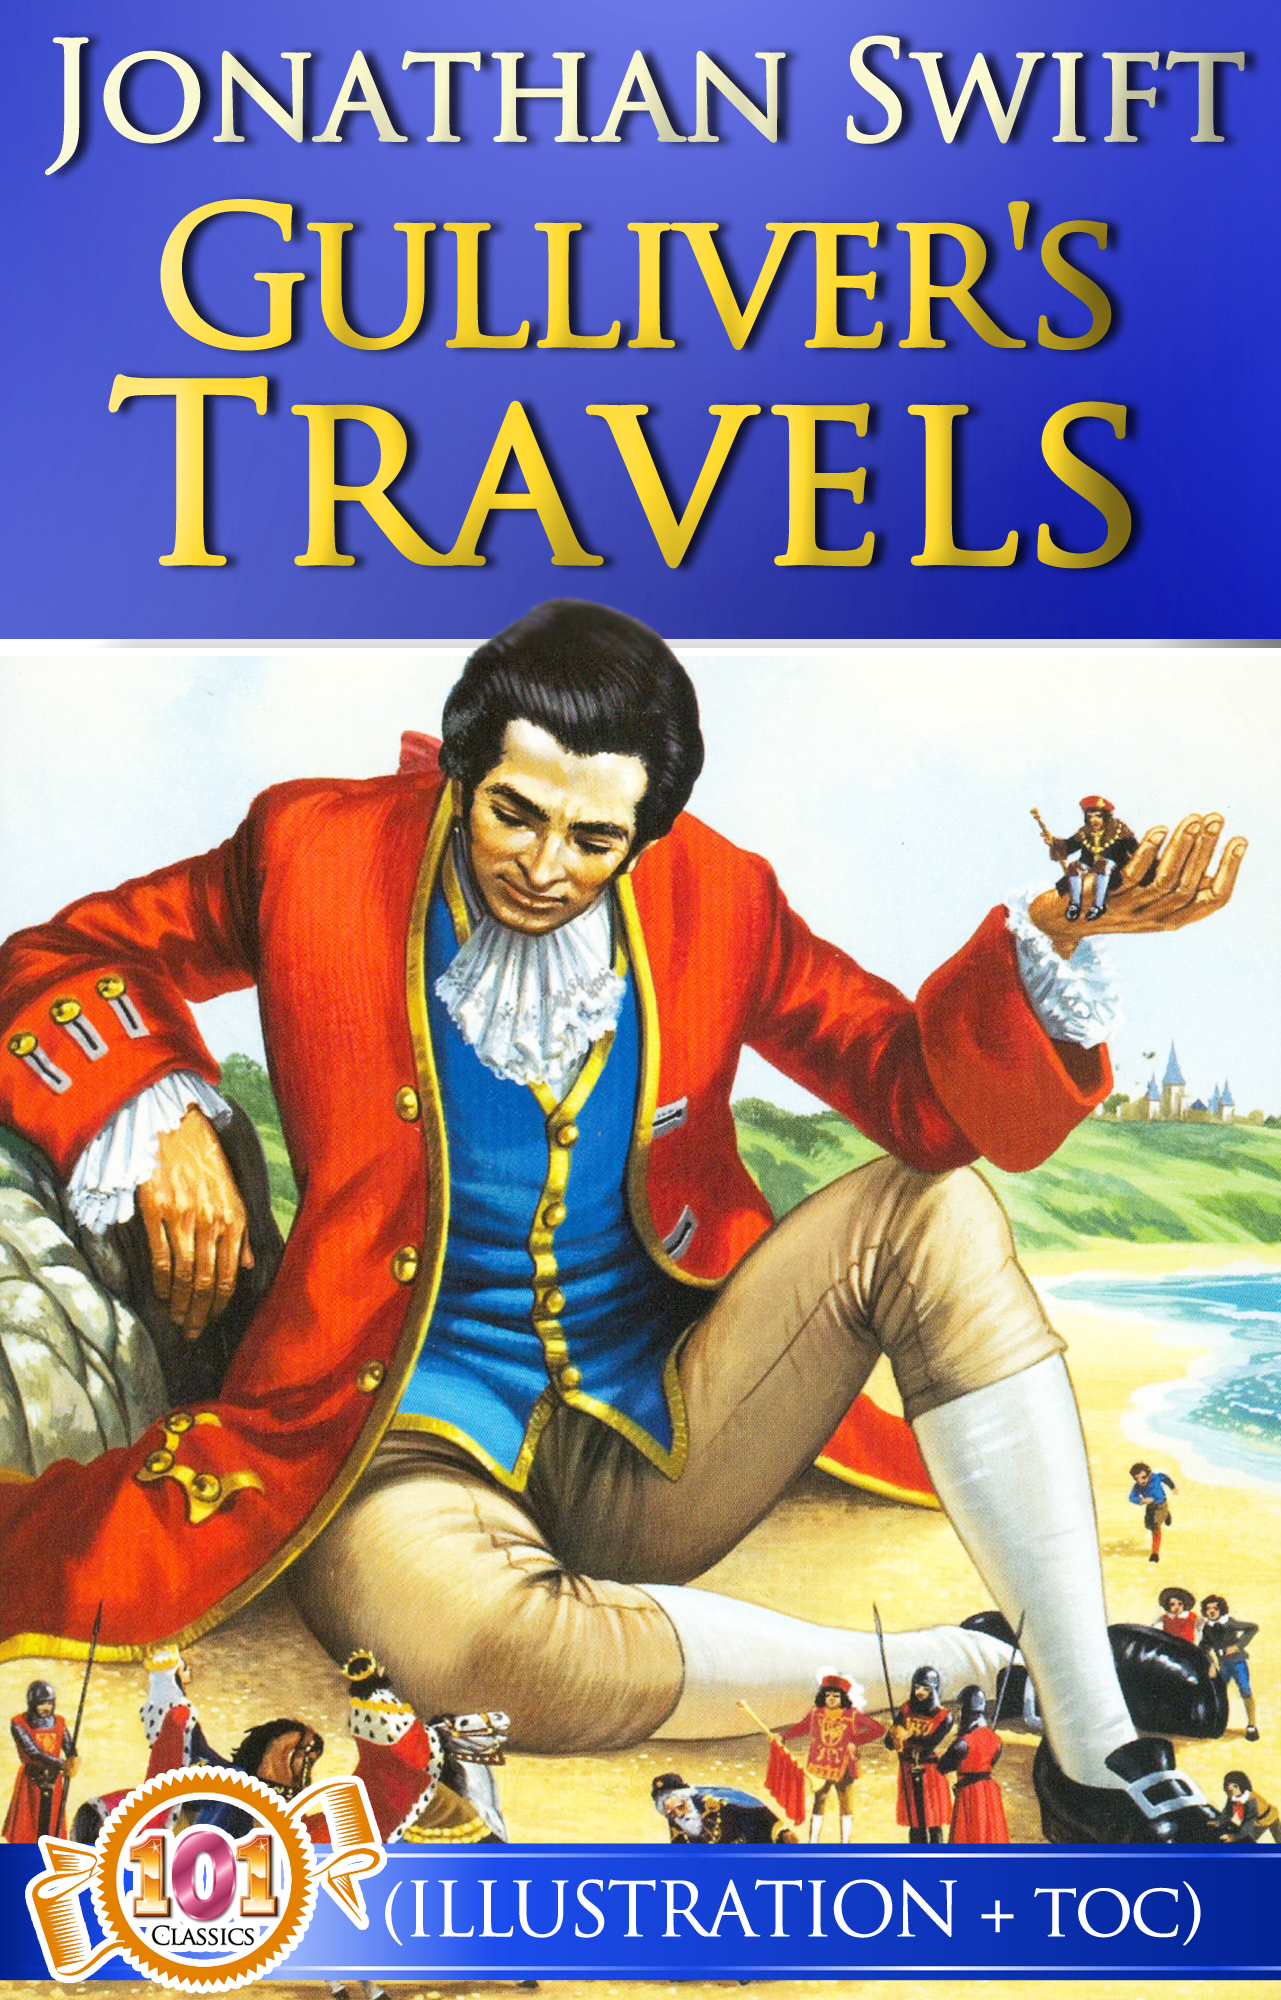 Jonathan Swift - Gulliver' s Travels (Classics) (Illustrations + Active Table of Contents)